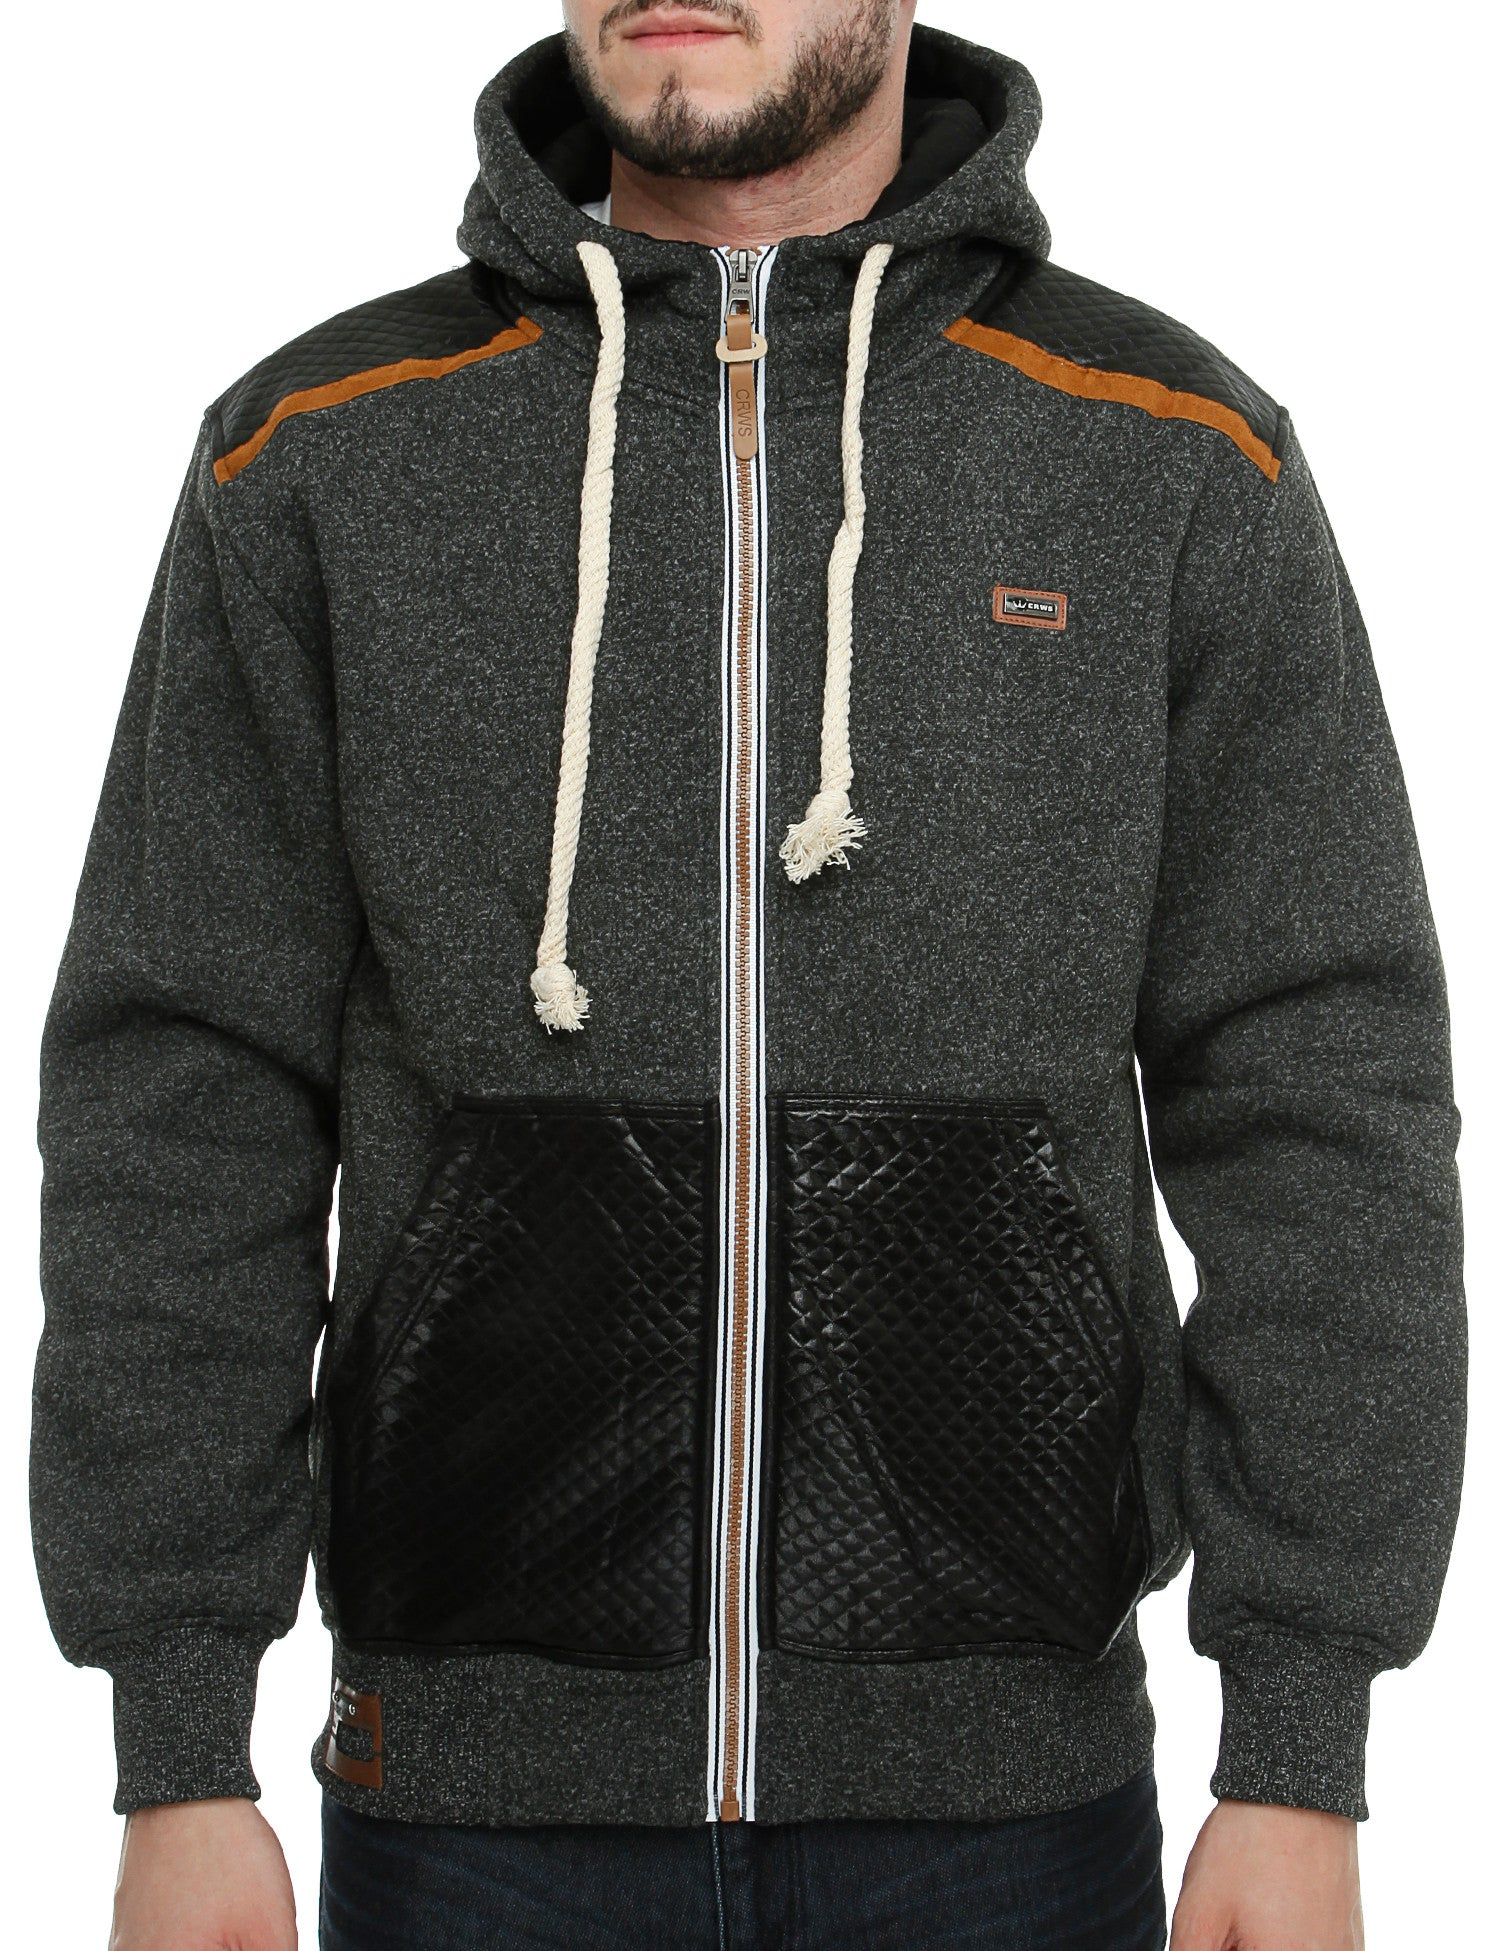 Cyberwear Zip Hoody W-3558 Black Grey